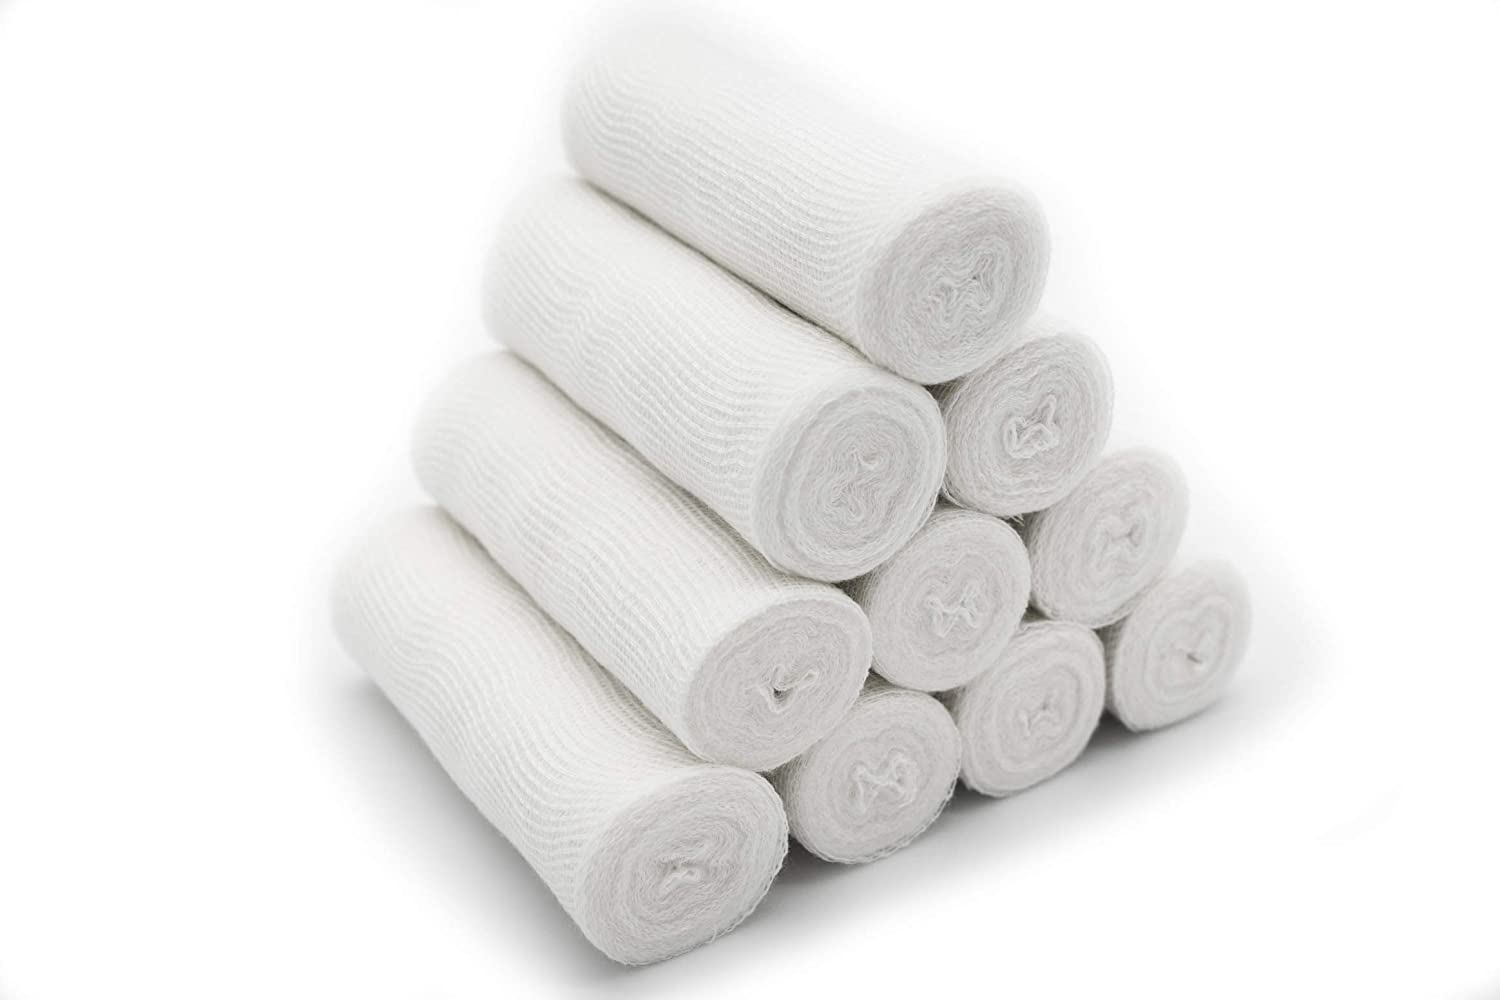 10-Pack Sterile 100% Cotton Gauze Medical Bandage Rolls, Fine Edges, 4 x 5.5 Yards 71EMabaEihL